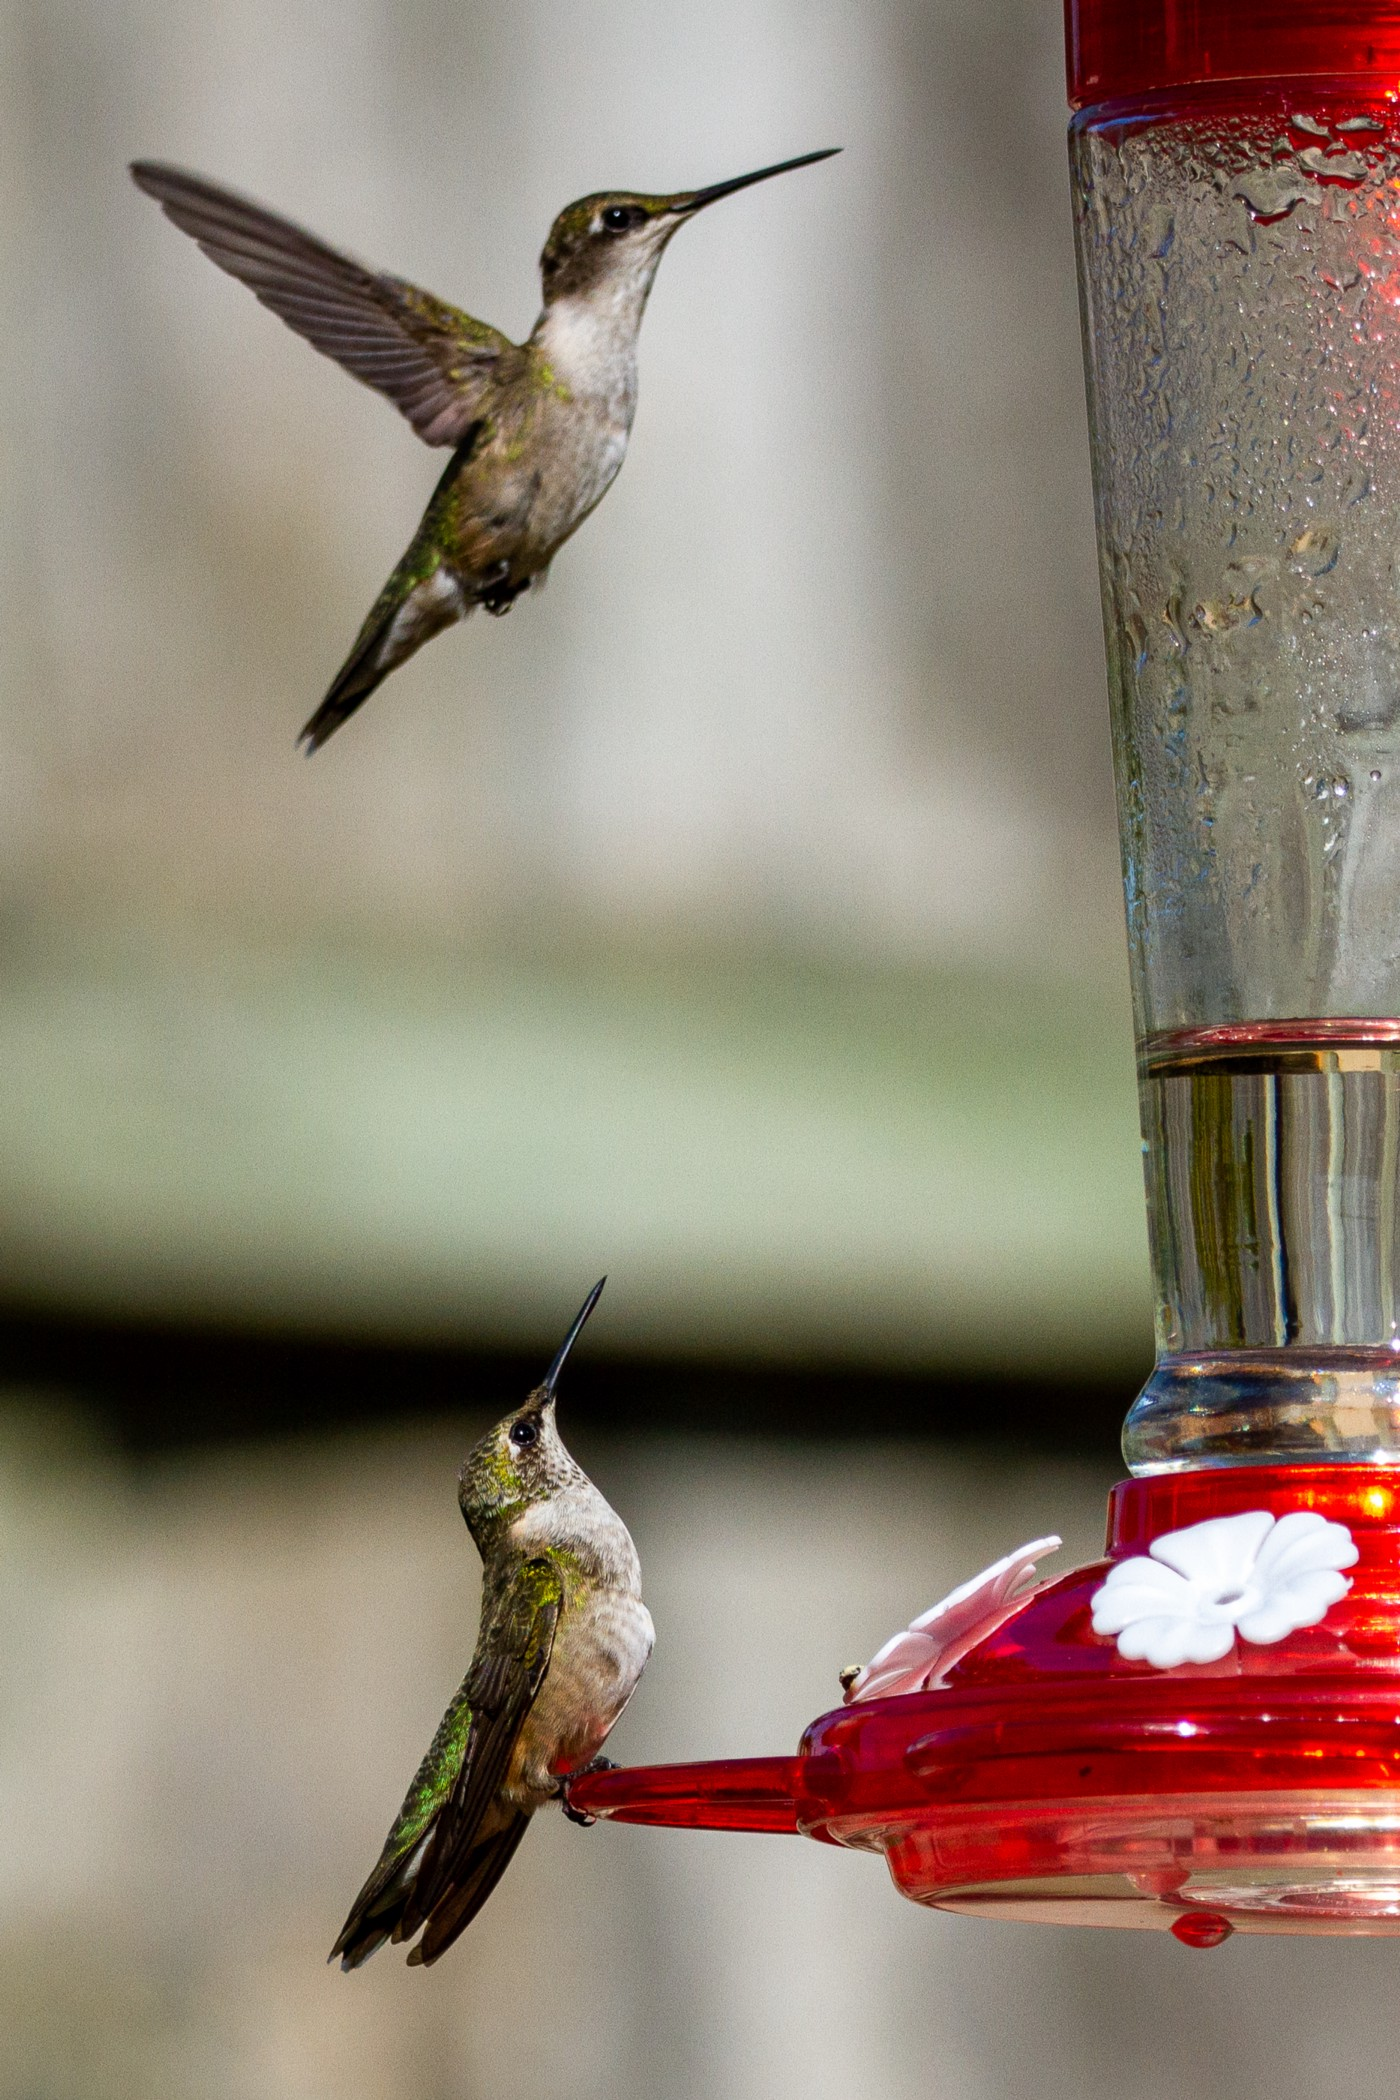 Close up of two hummingbirds feeding from same feeder.